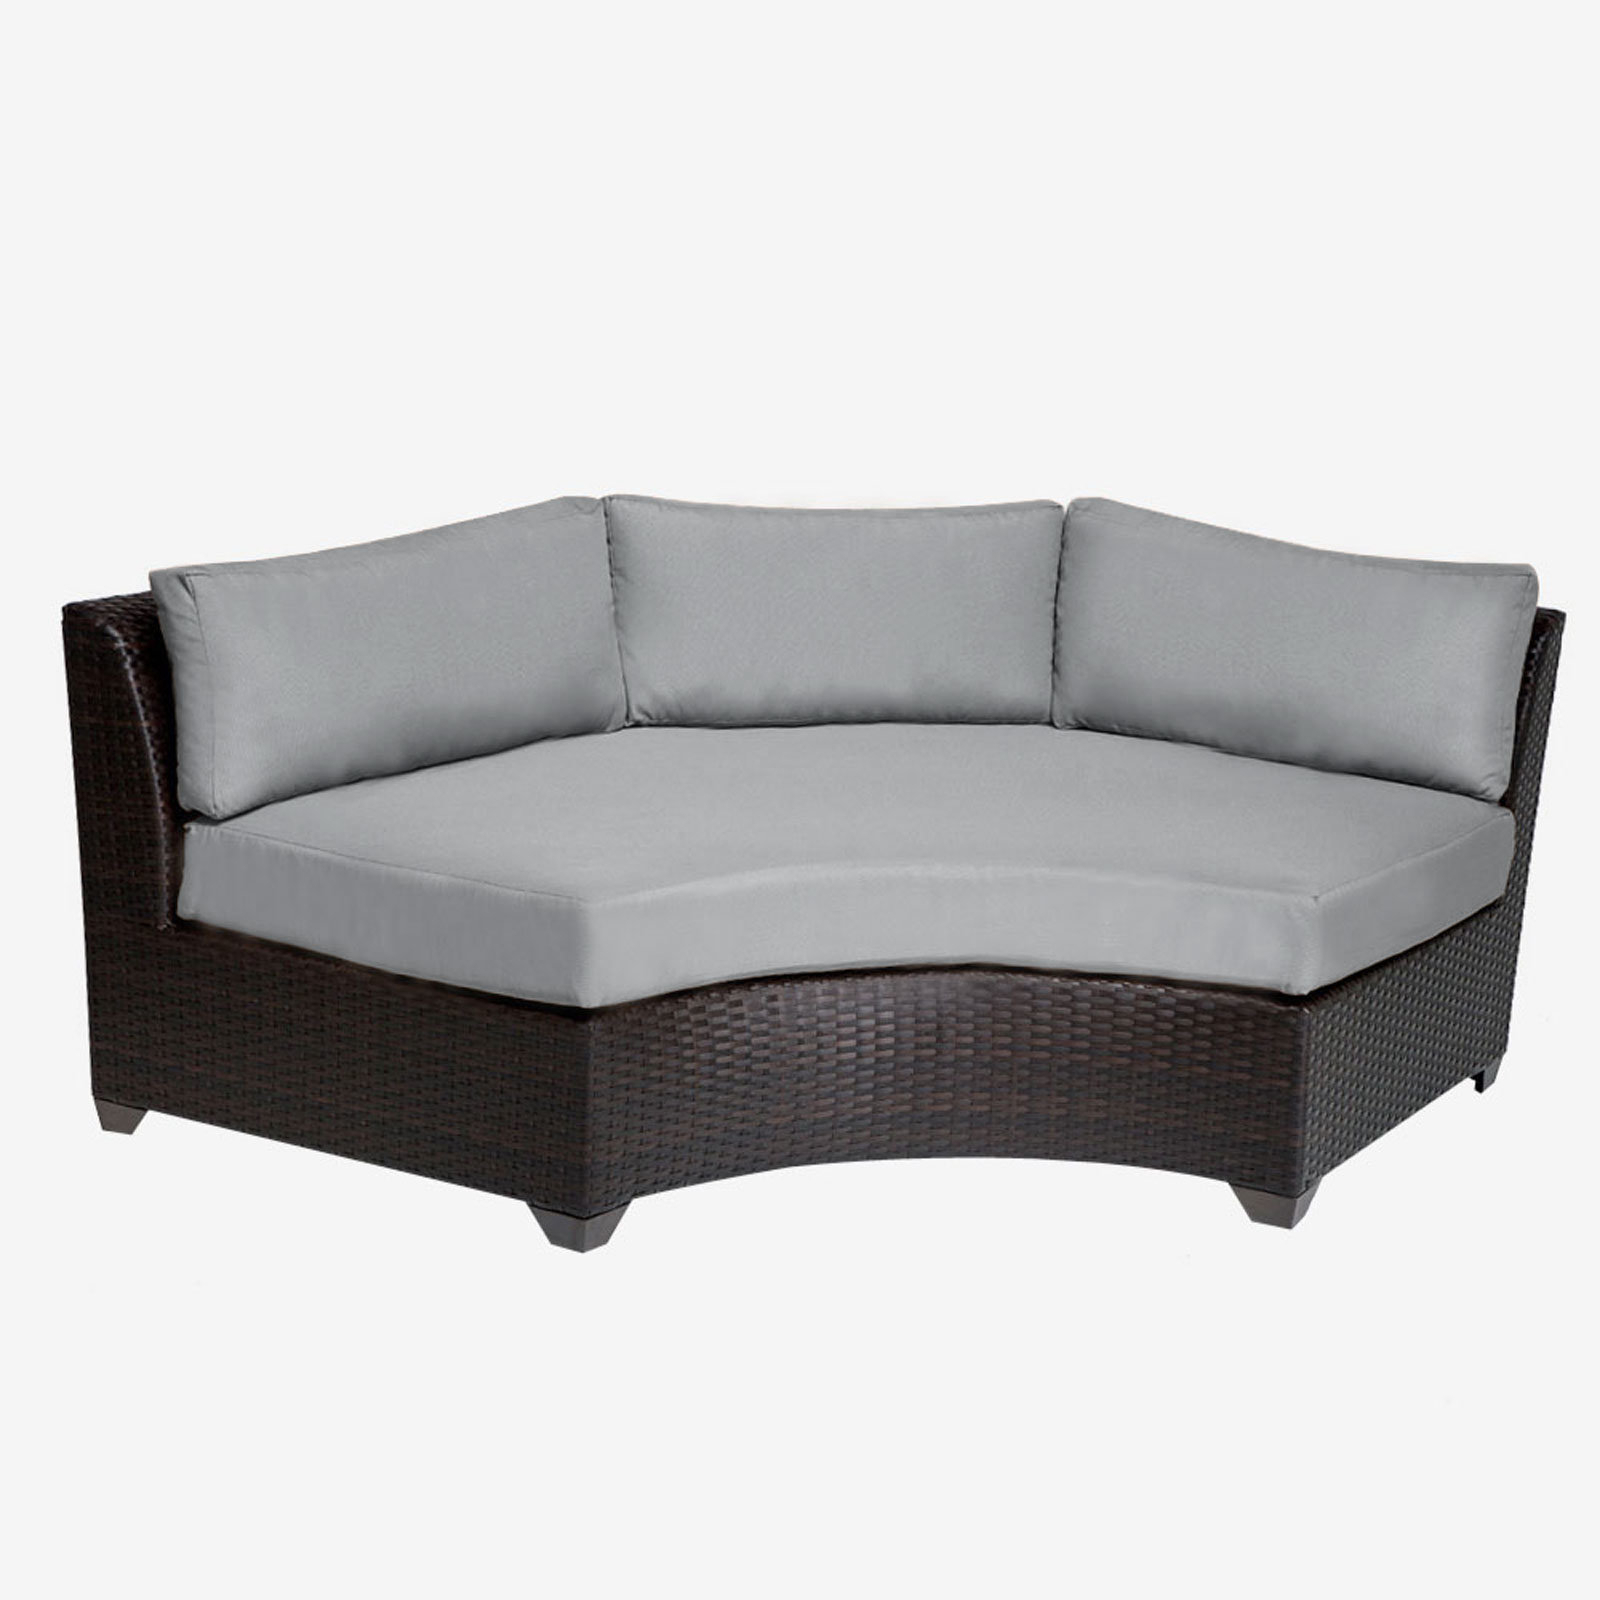 Camak Patio Sofa With Cushions With Regard To Fashionable Camak Patio Sofas With Cushions (View 3 of 20)